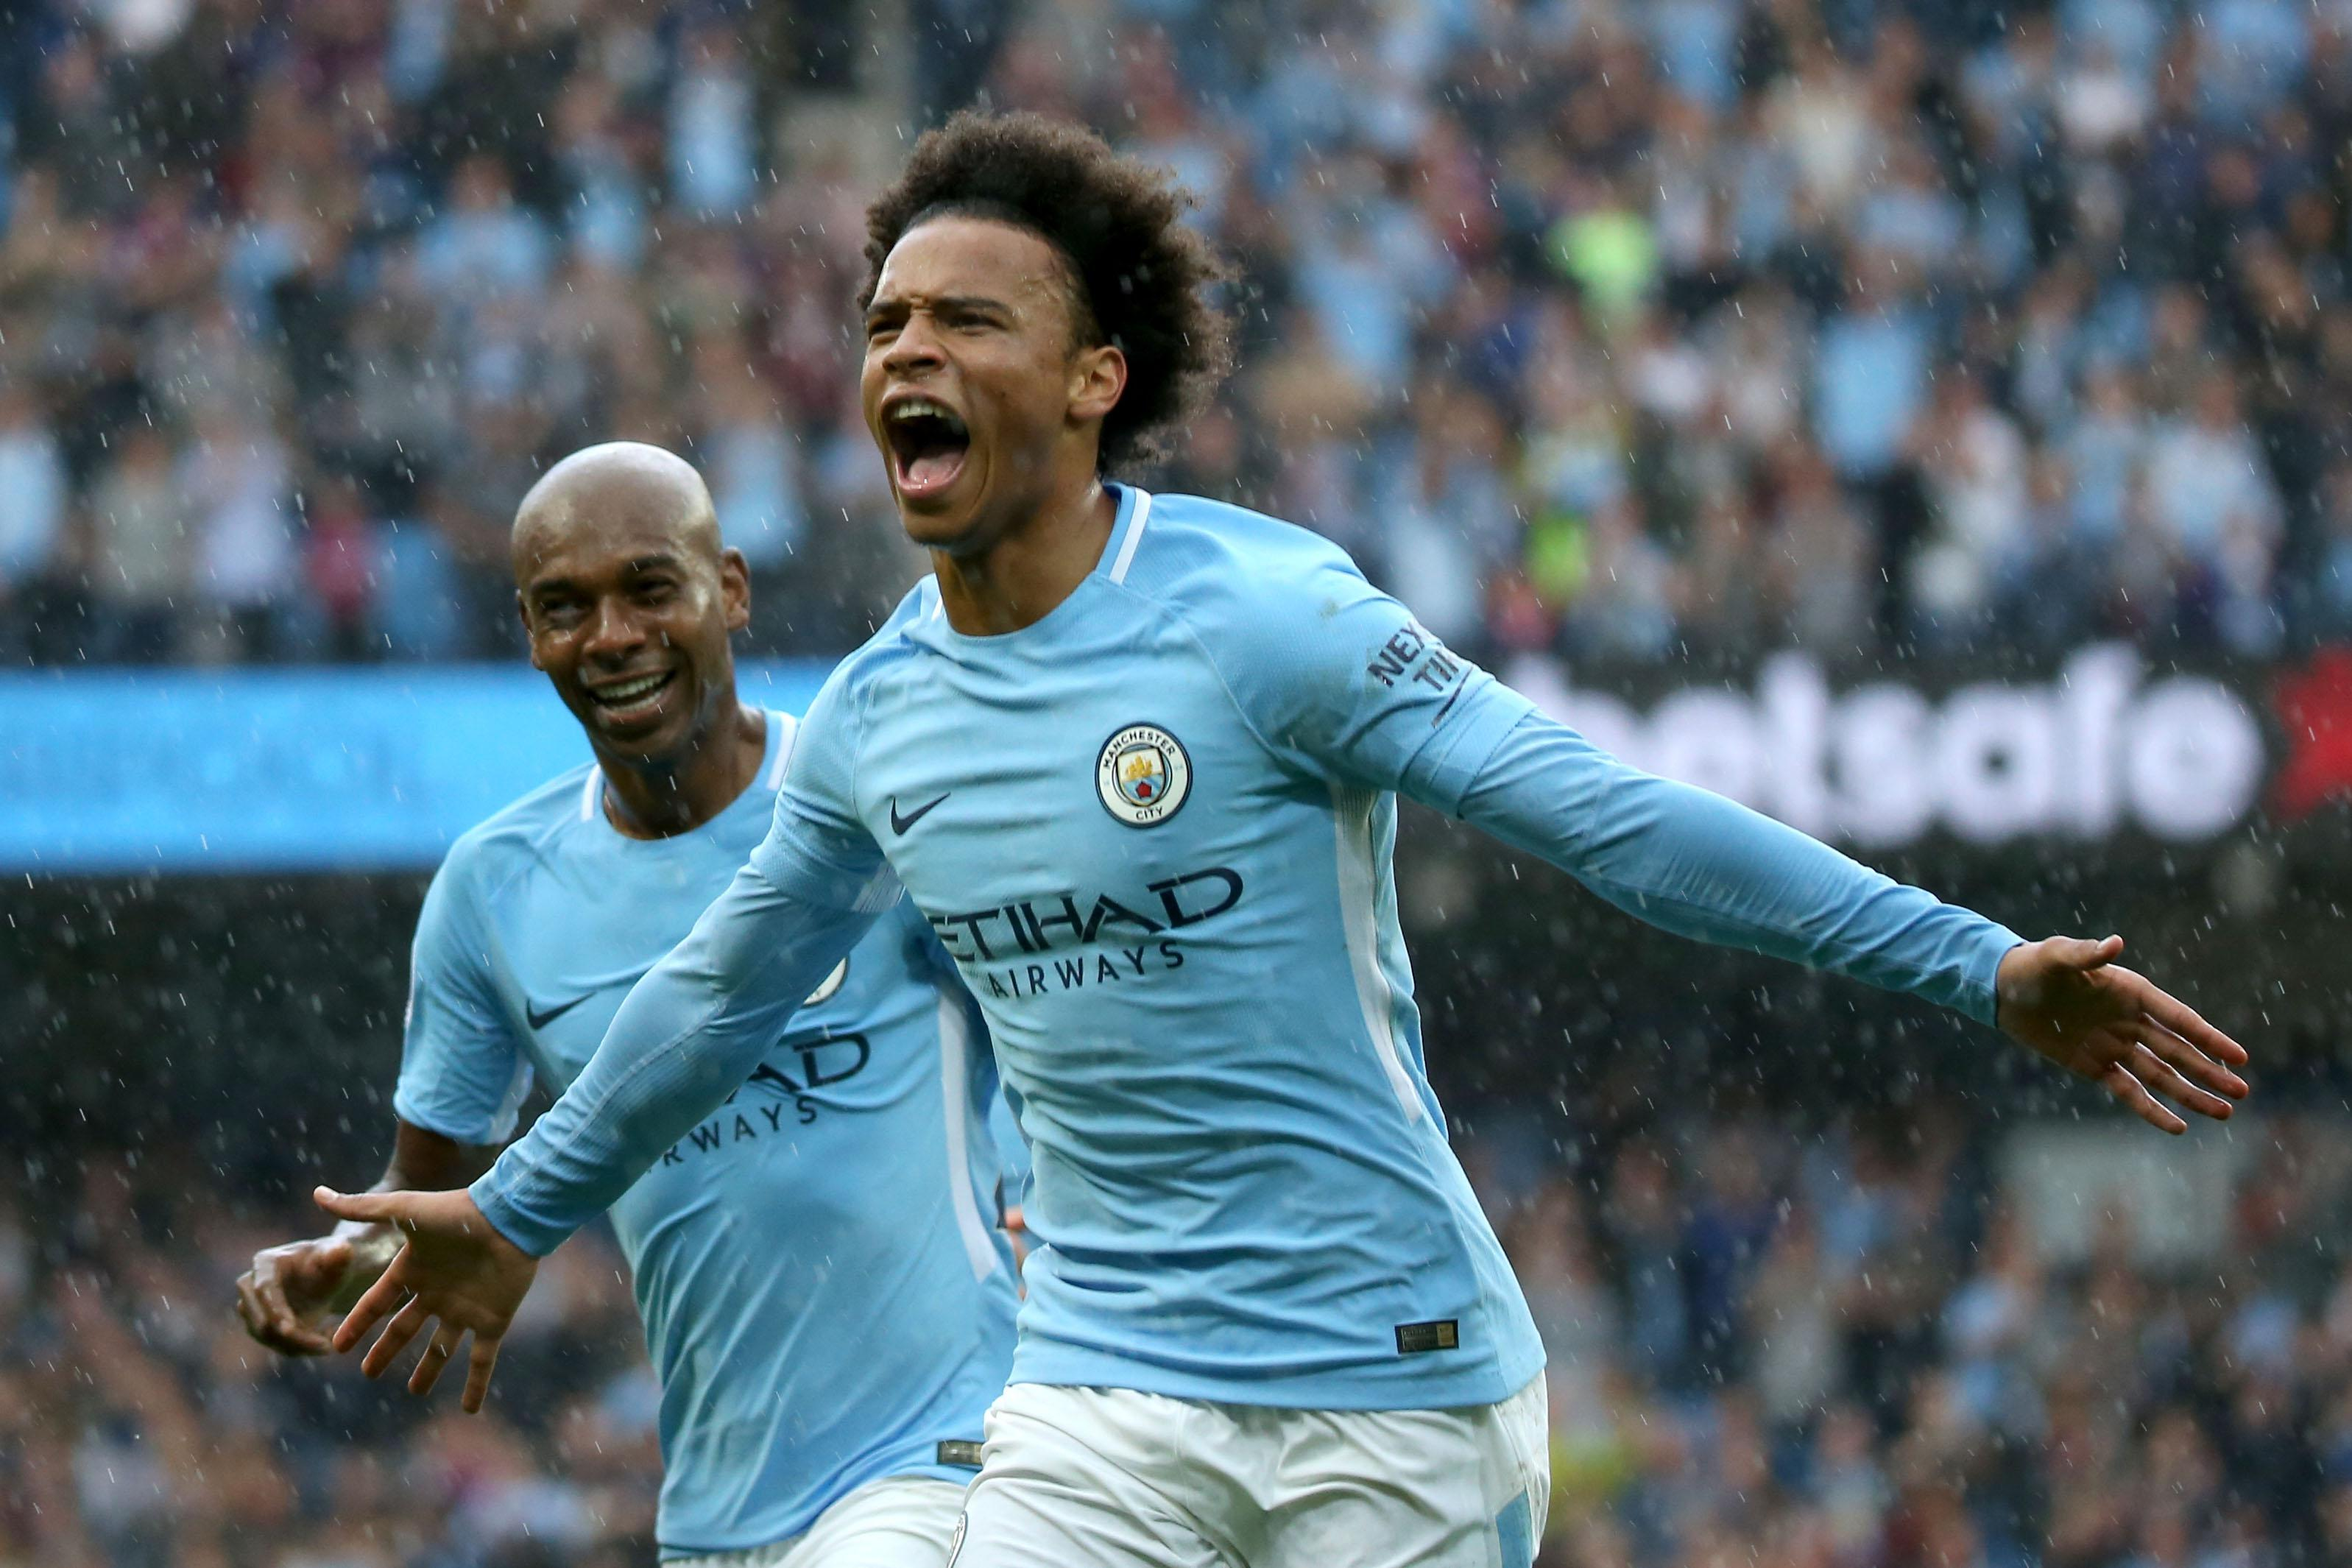 Sane has been used effectively as an impact sub this season